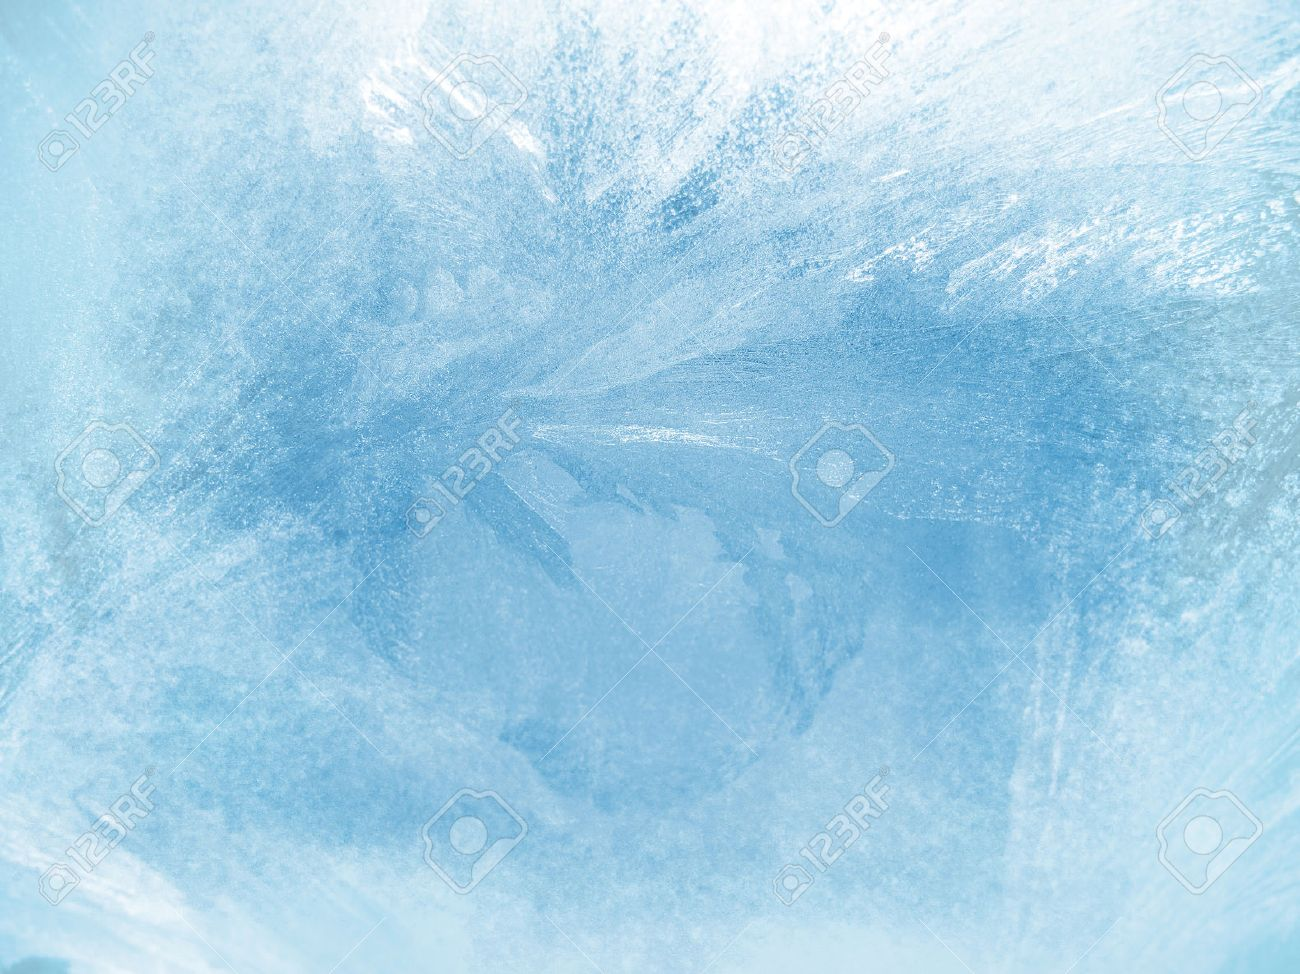 Ice on a window, background - 55233499